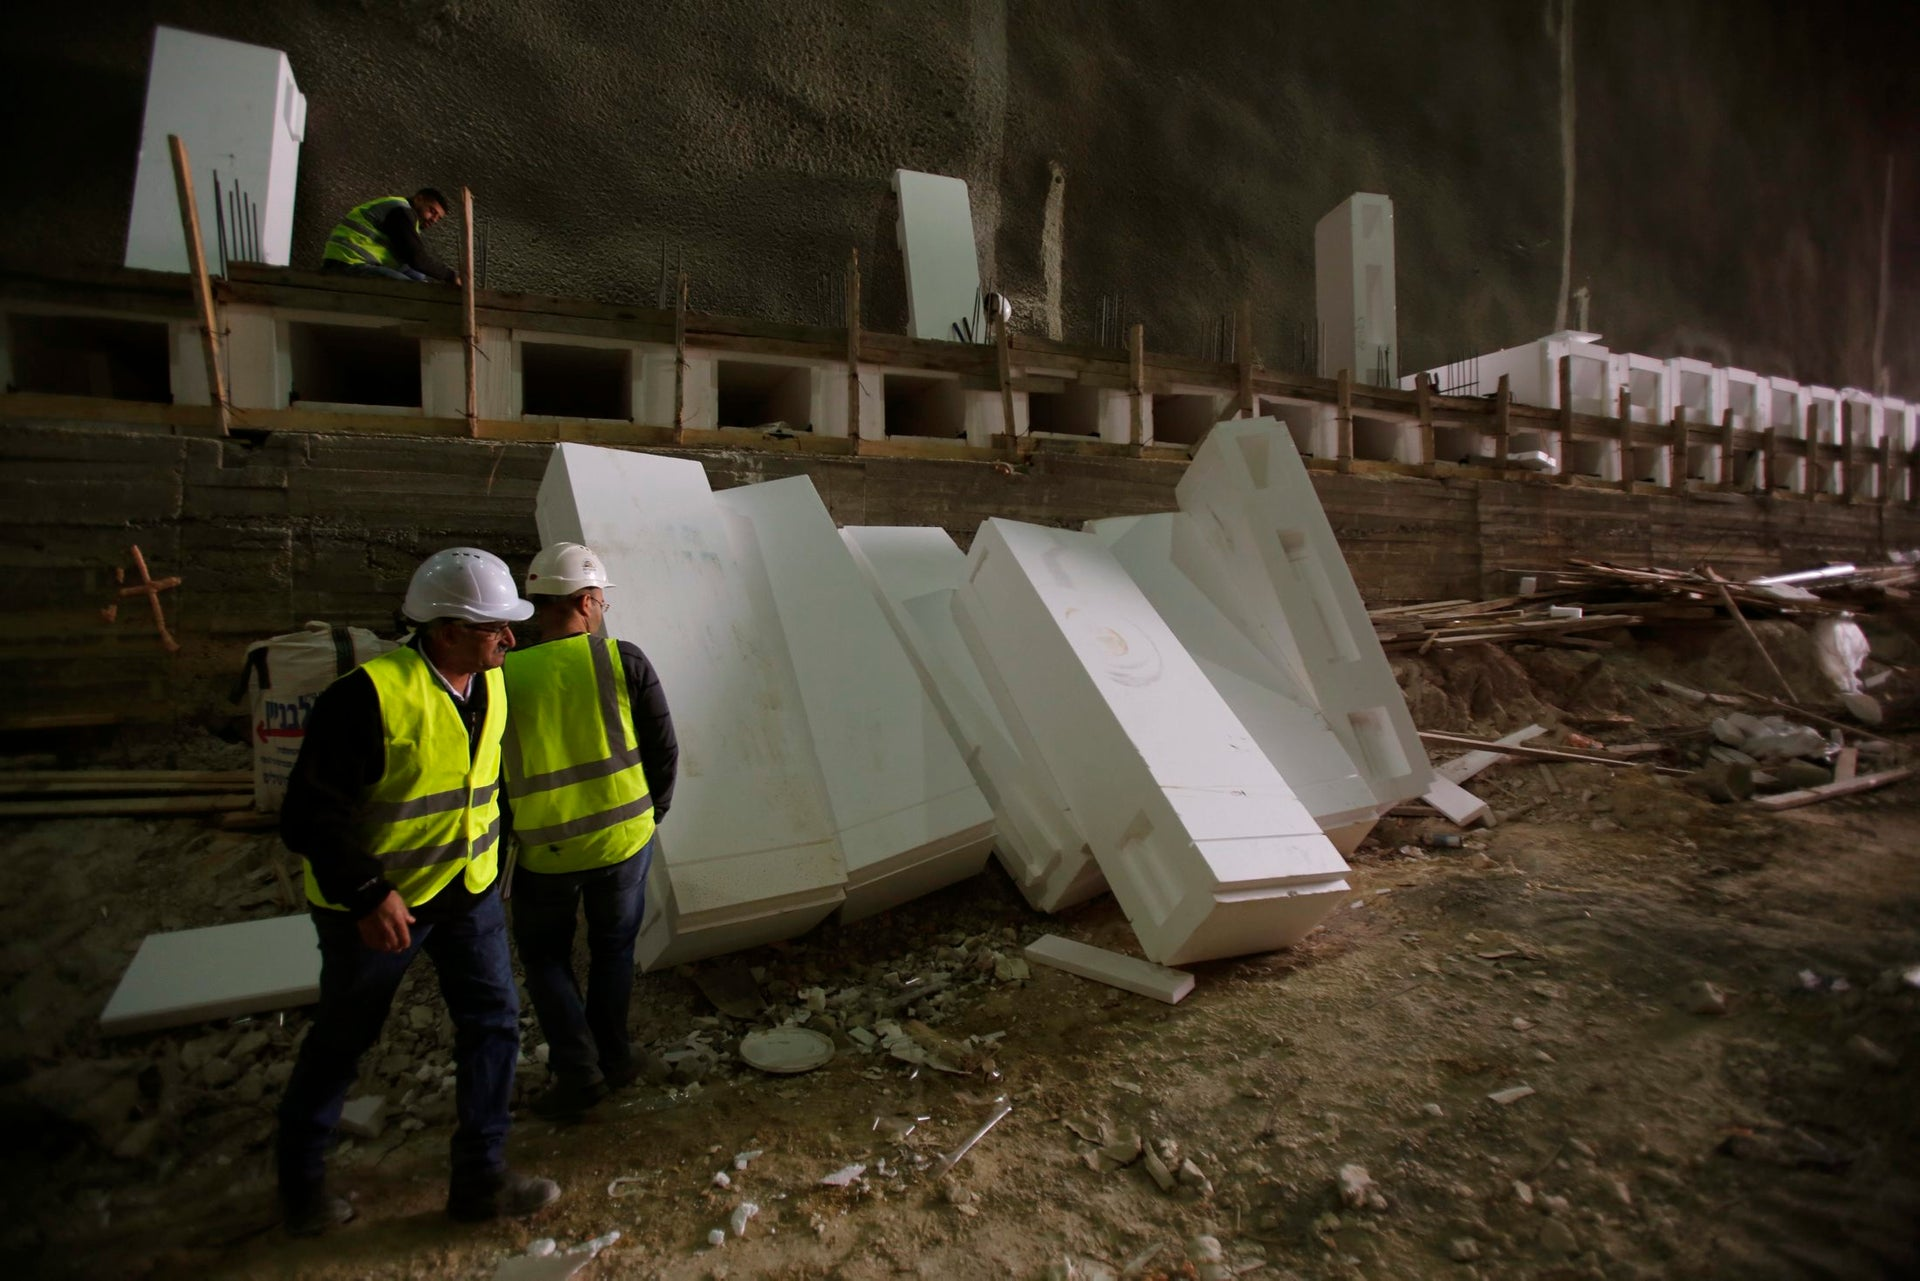 Styrofoam slabs at the construction site of new catacombs at Har Menuchot cemetery in Jerusalem, December 2017.